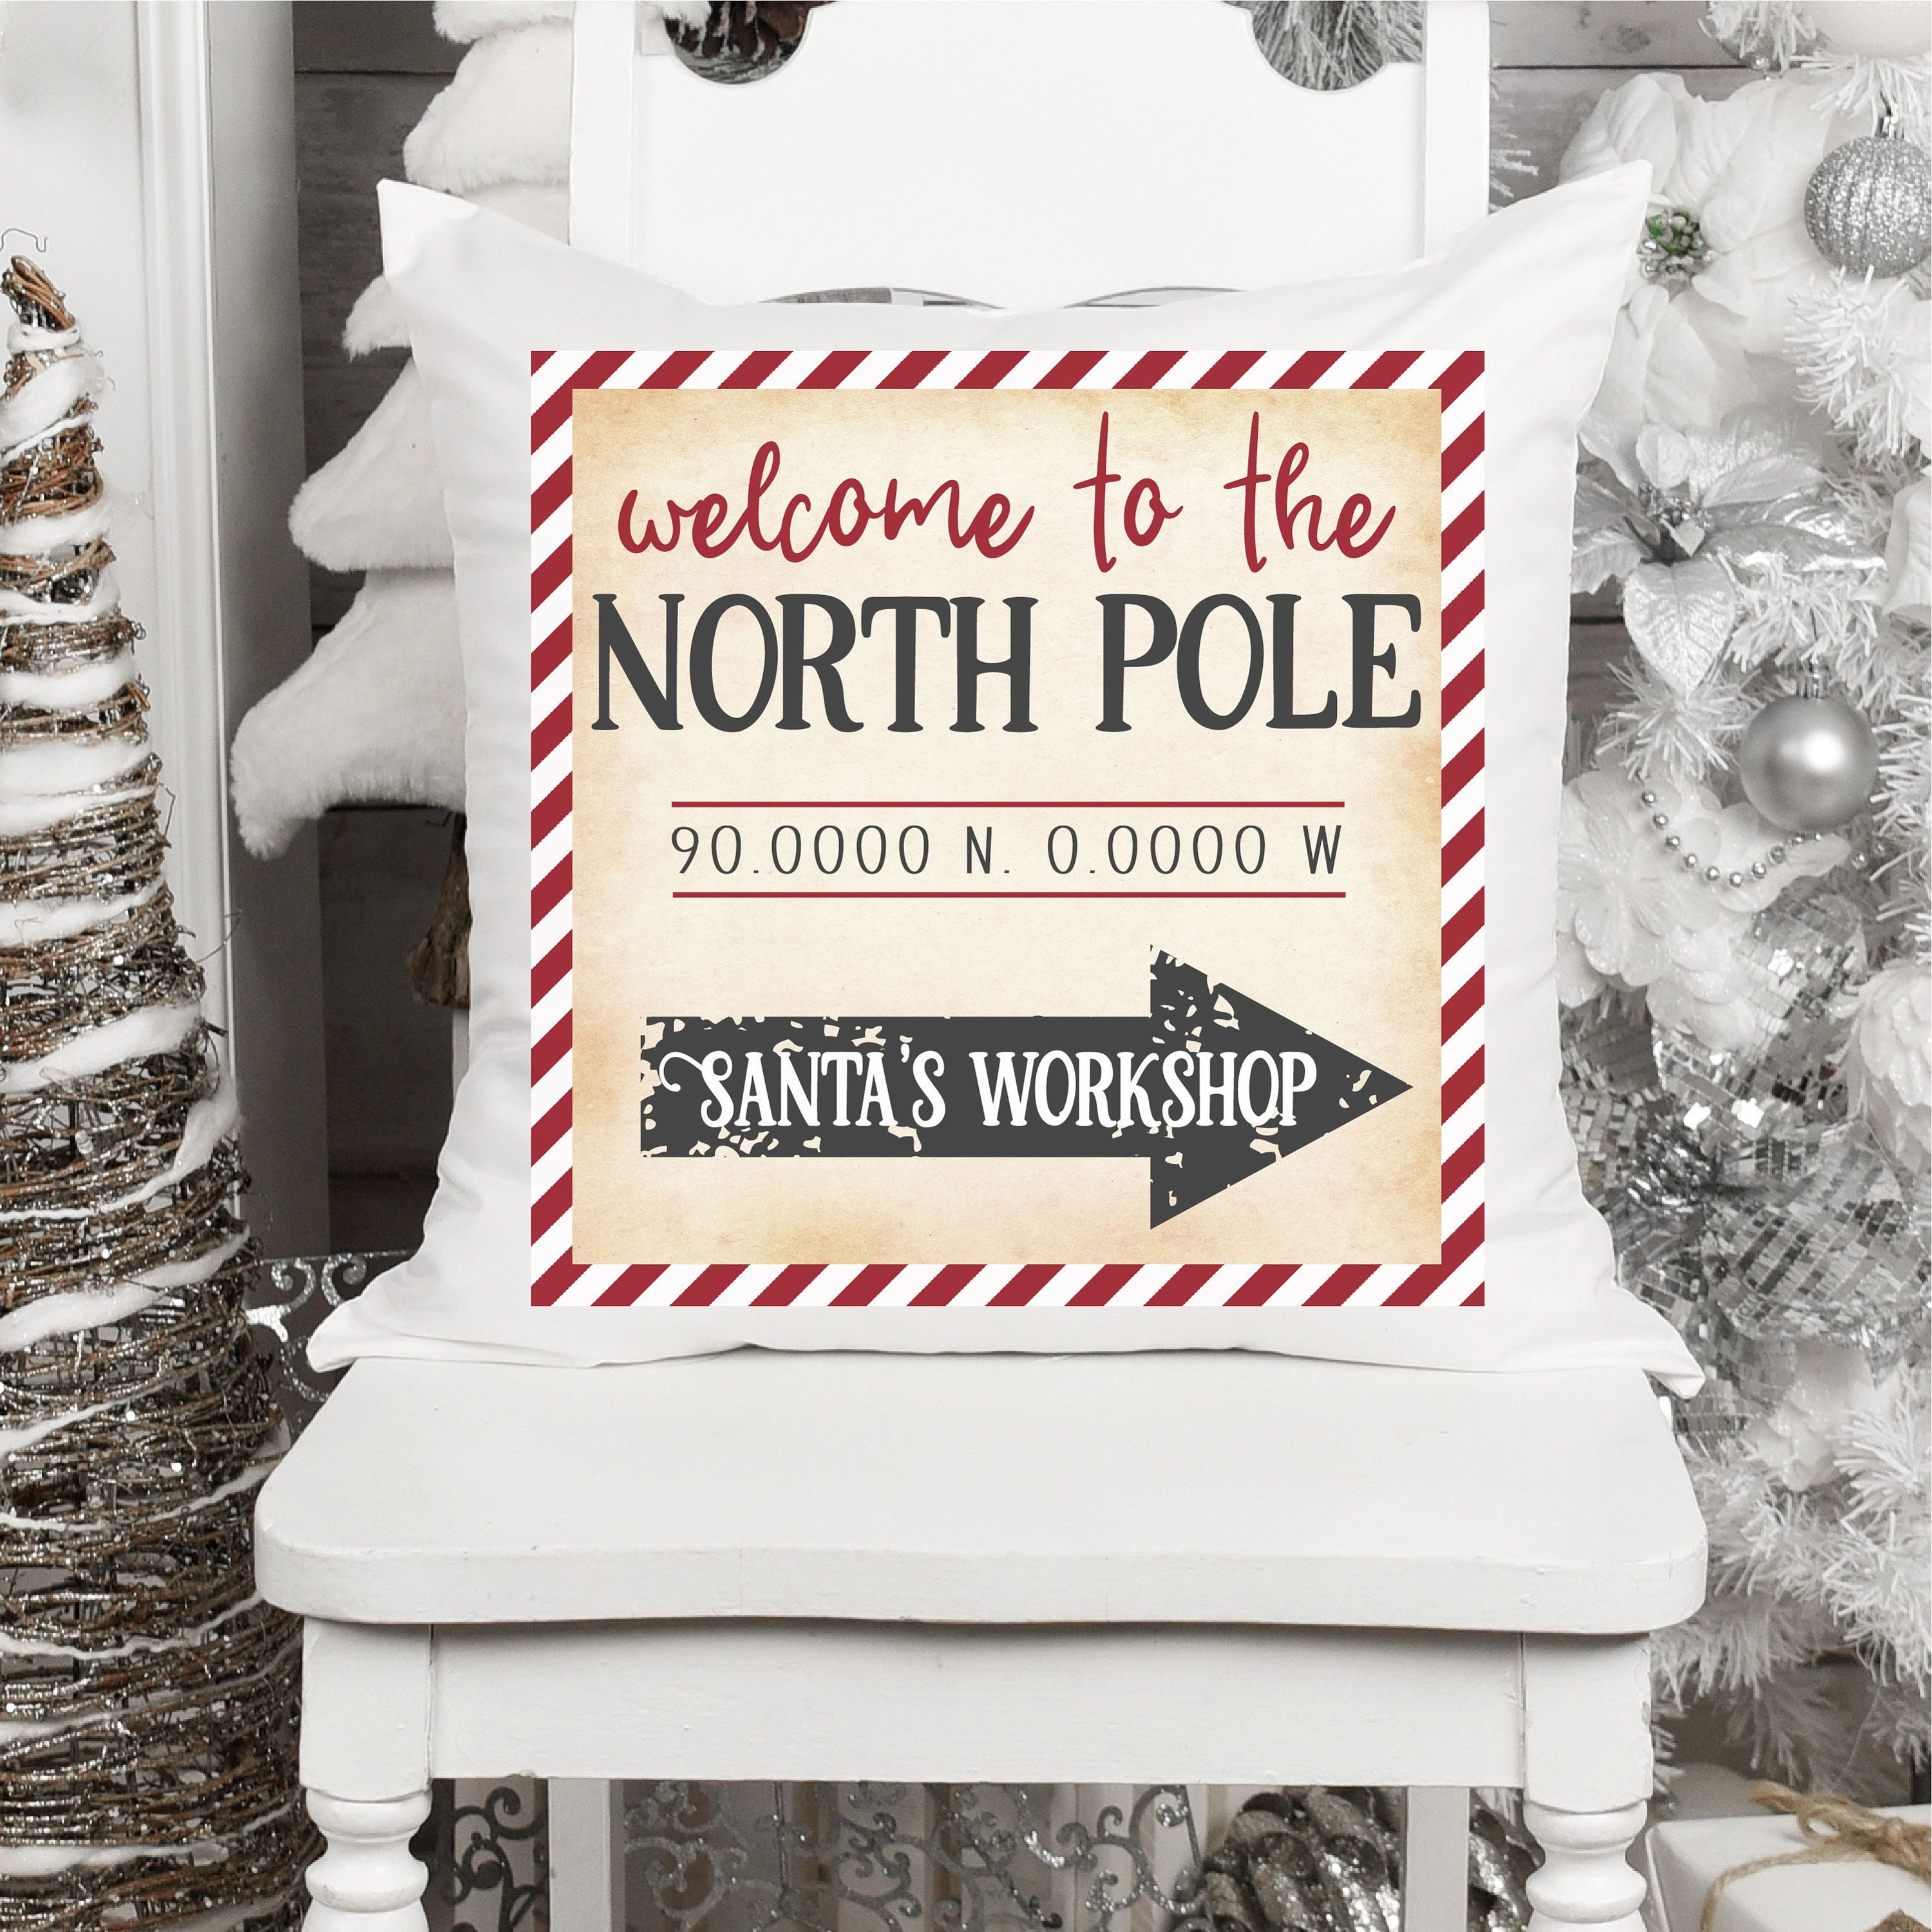 Welcome To The North Pole Png Sublimation Design Sublimation Design Download Dtg Printing Christmas Crafts Christmas Png Christmas Crafts Crafts Very Merry Christmas